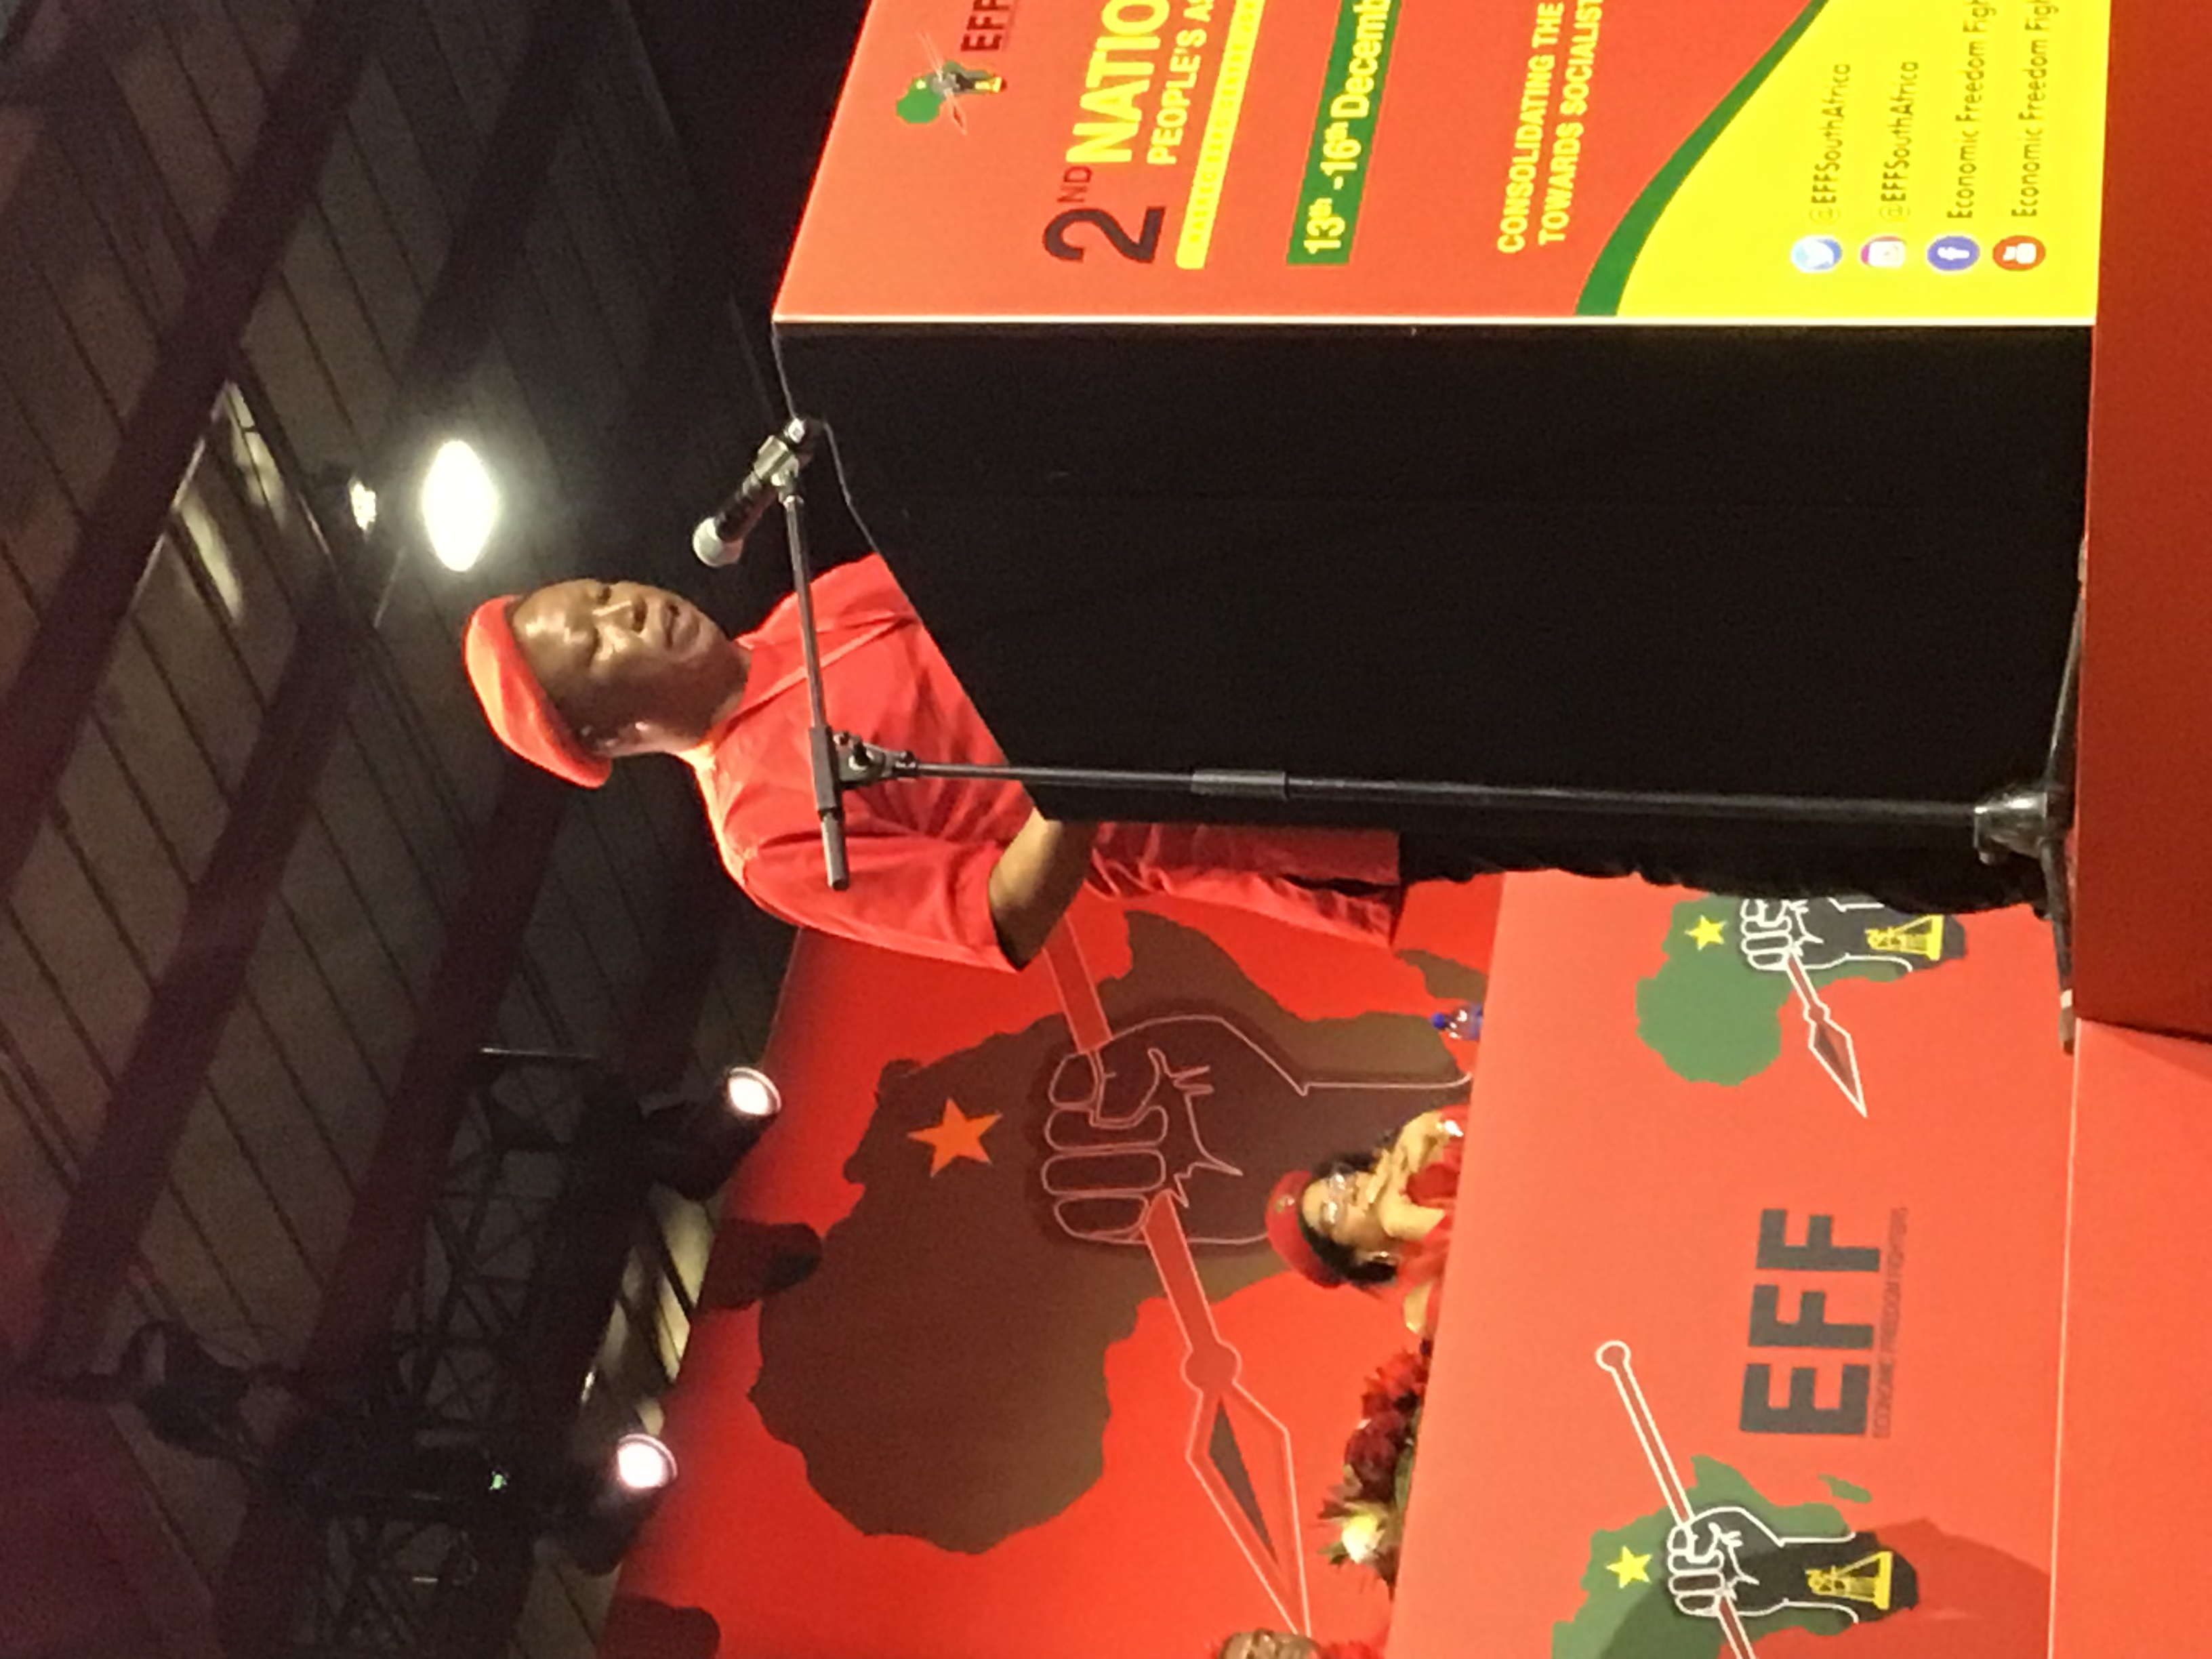 Malema calls for loyalty, wants the Left to unite